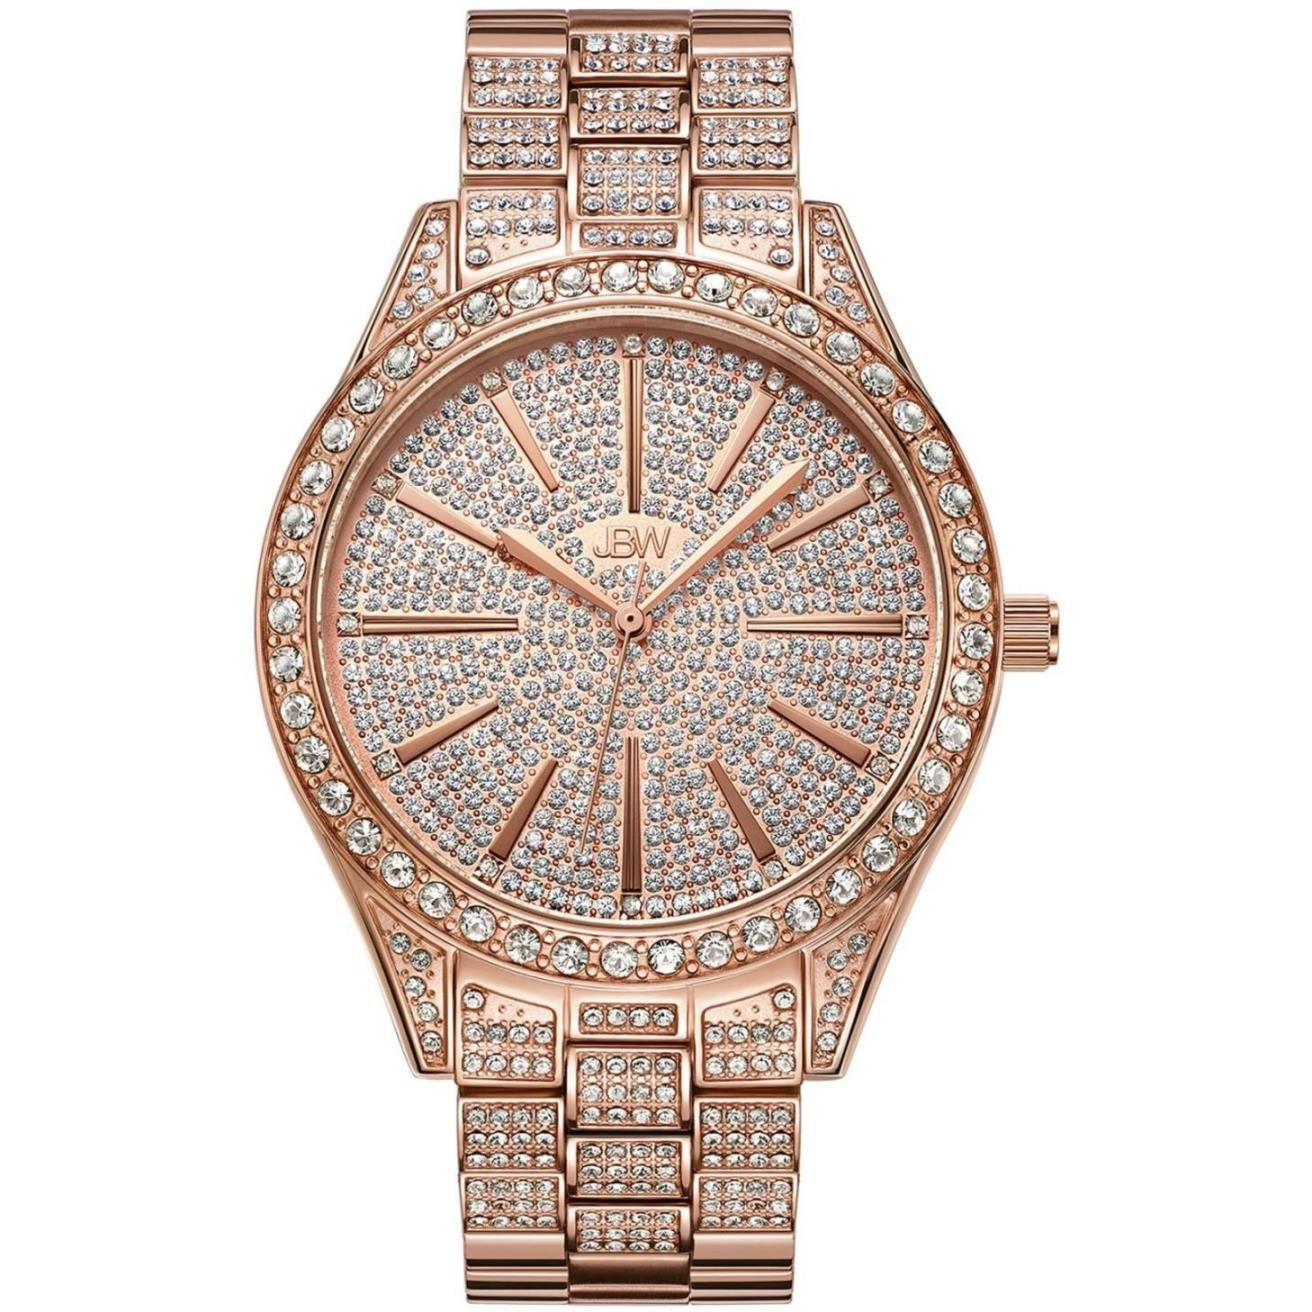 JBW Luxury Women s Cristal 0.12 Carat Diamond Wrist Watch with Stainless Steel Link Bracelet